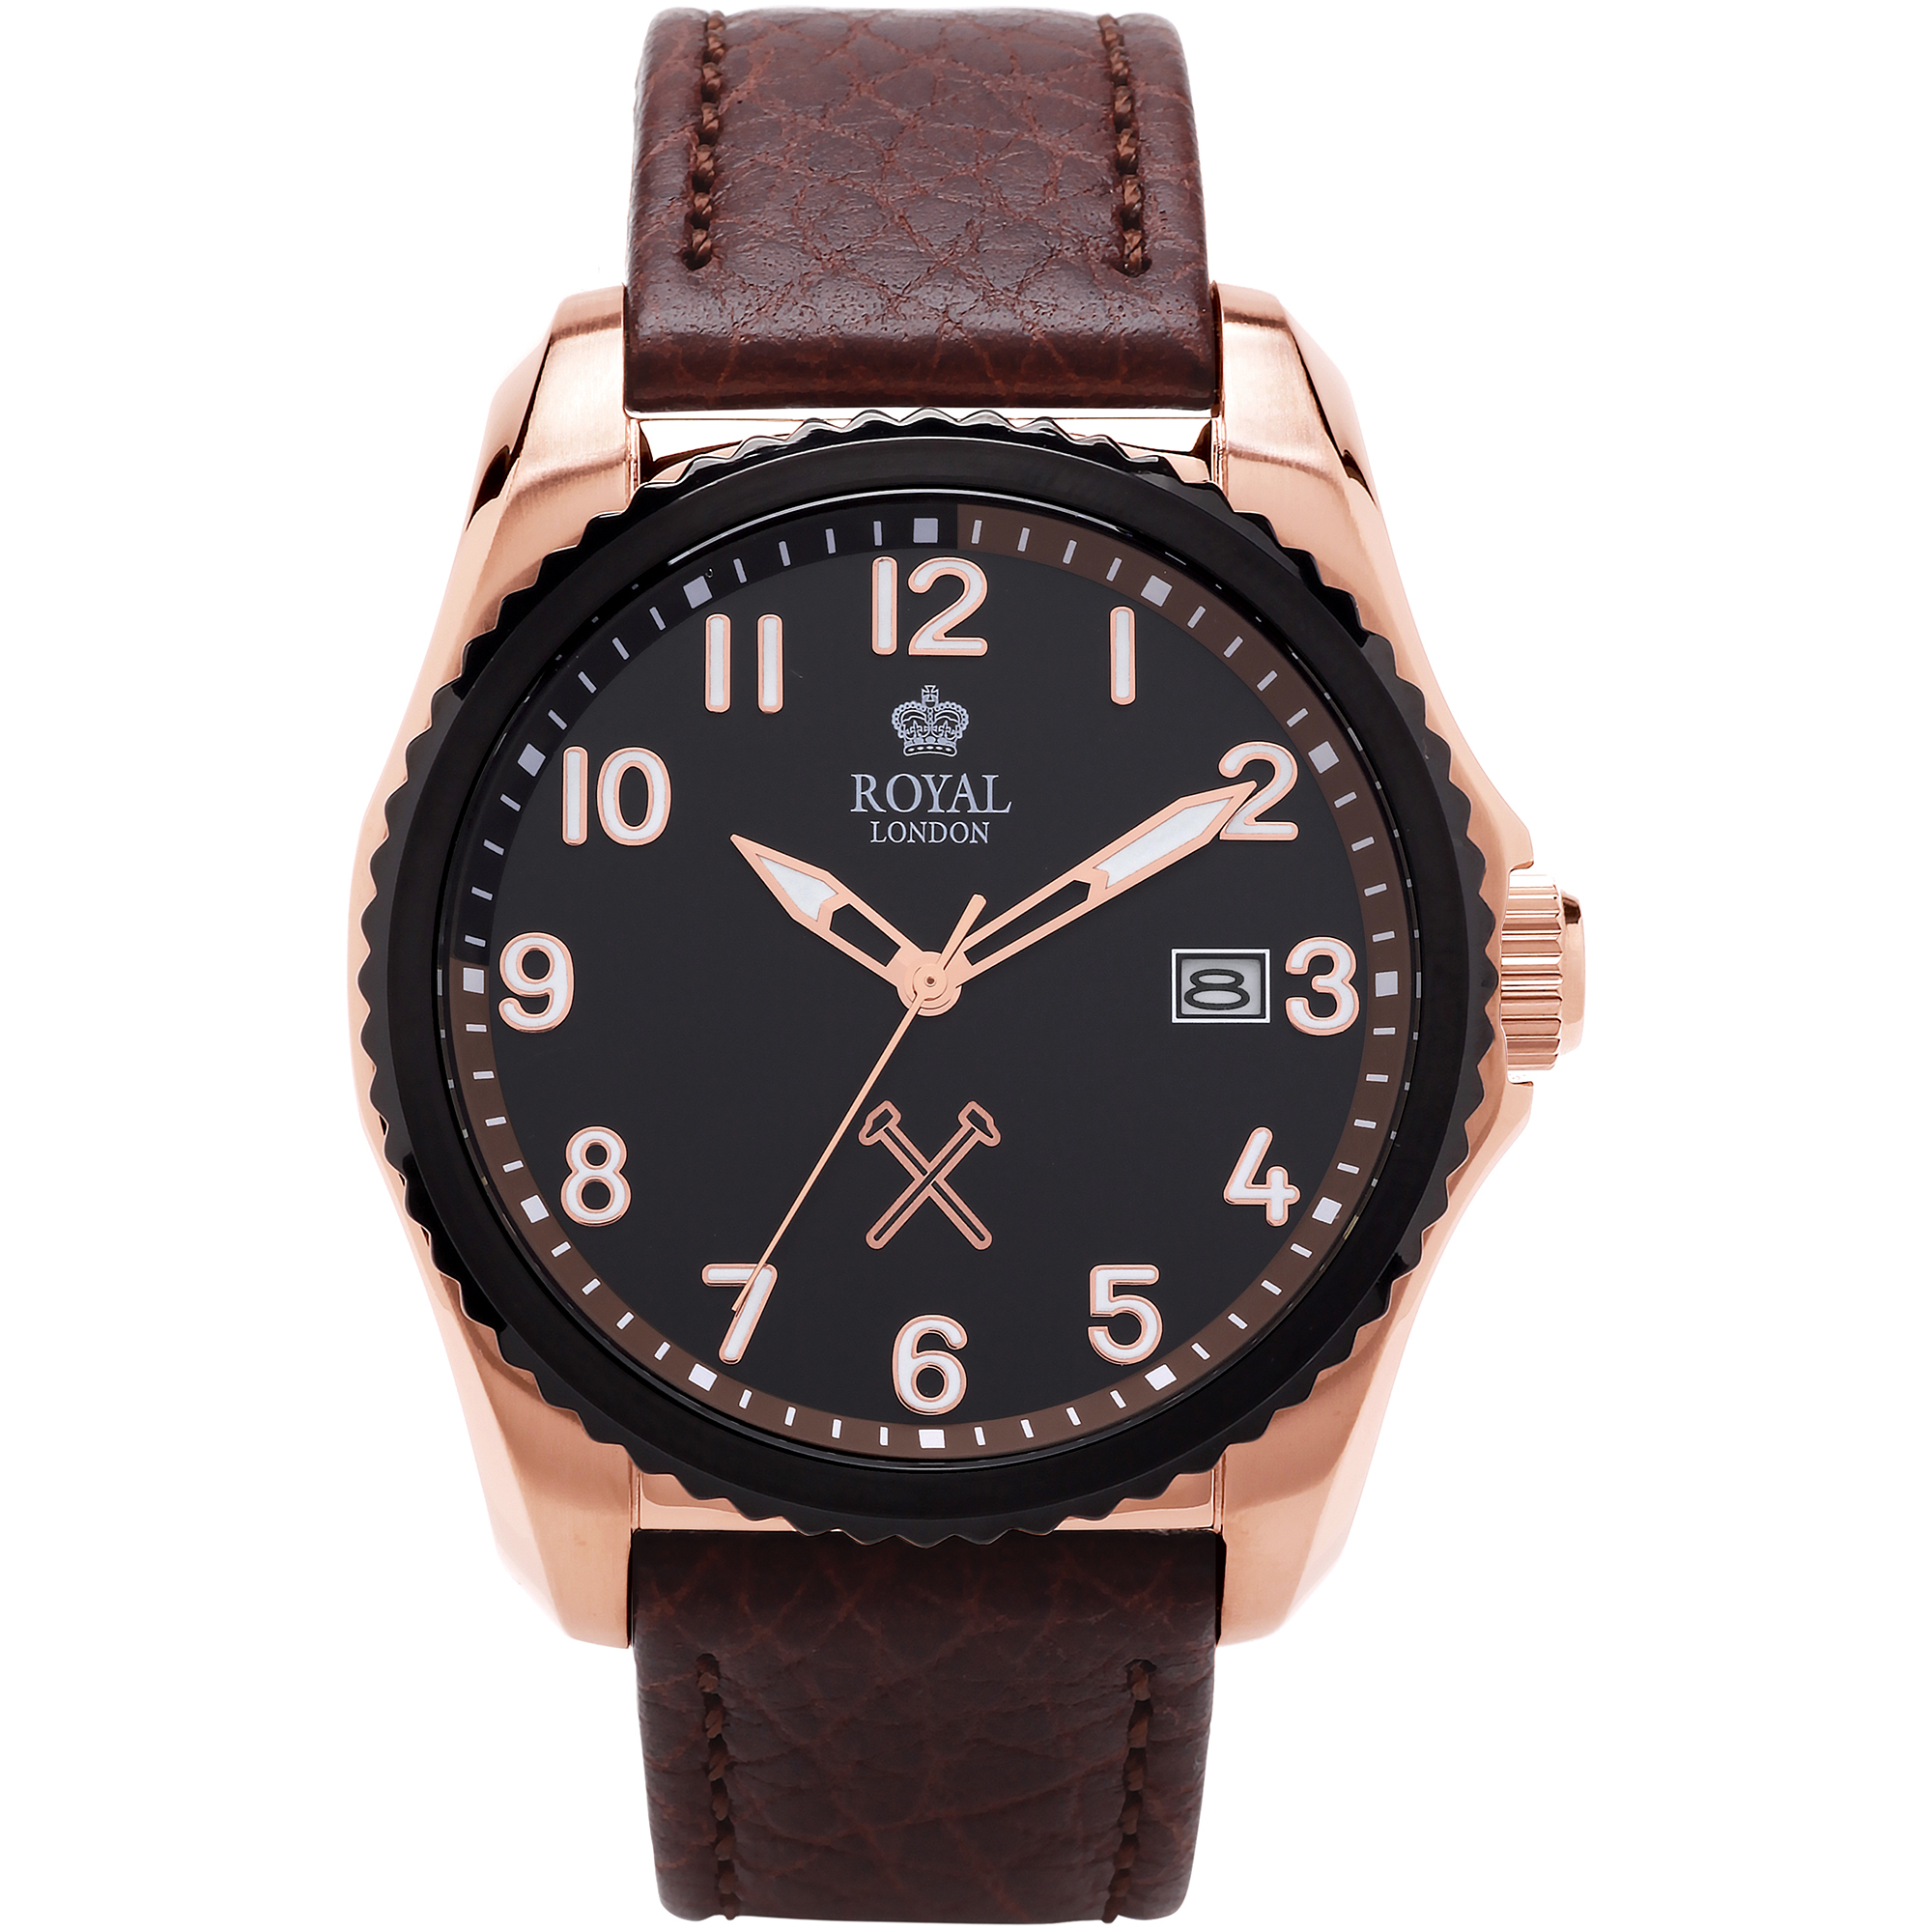 timepieces watches james mccabe by product watch slim jamesmccabe original the london